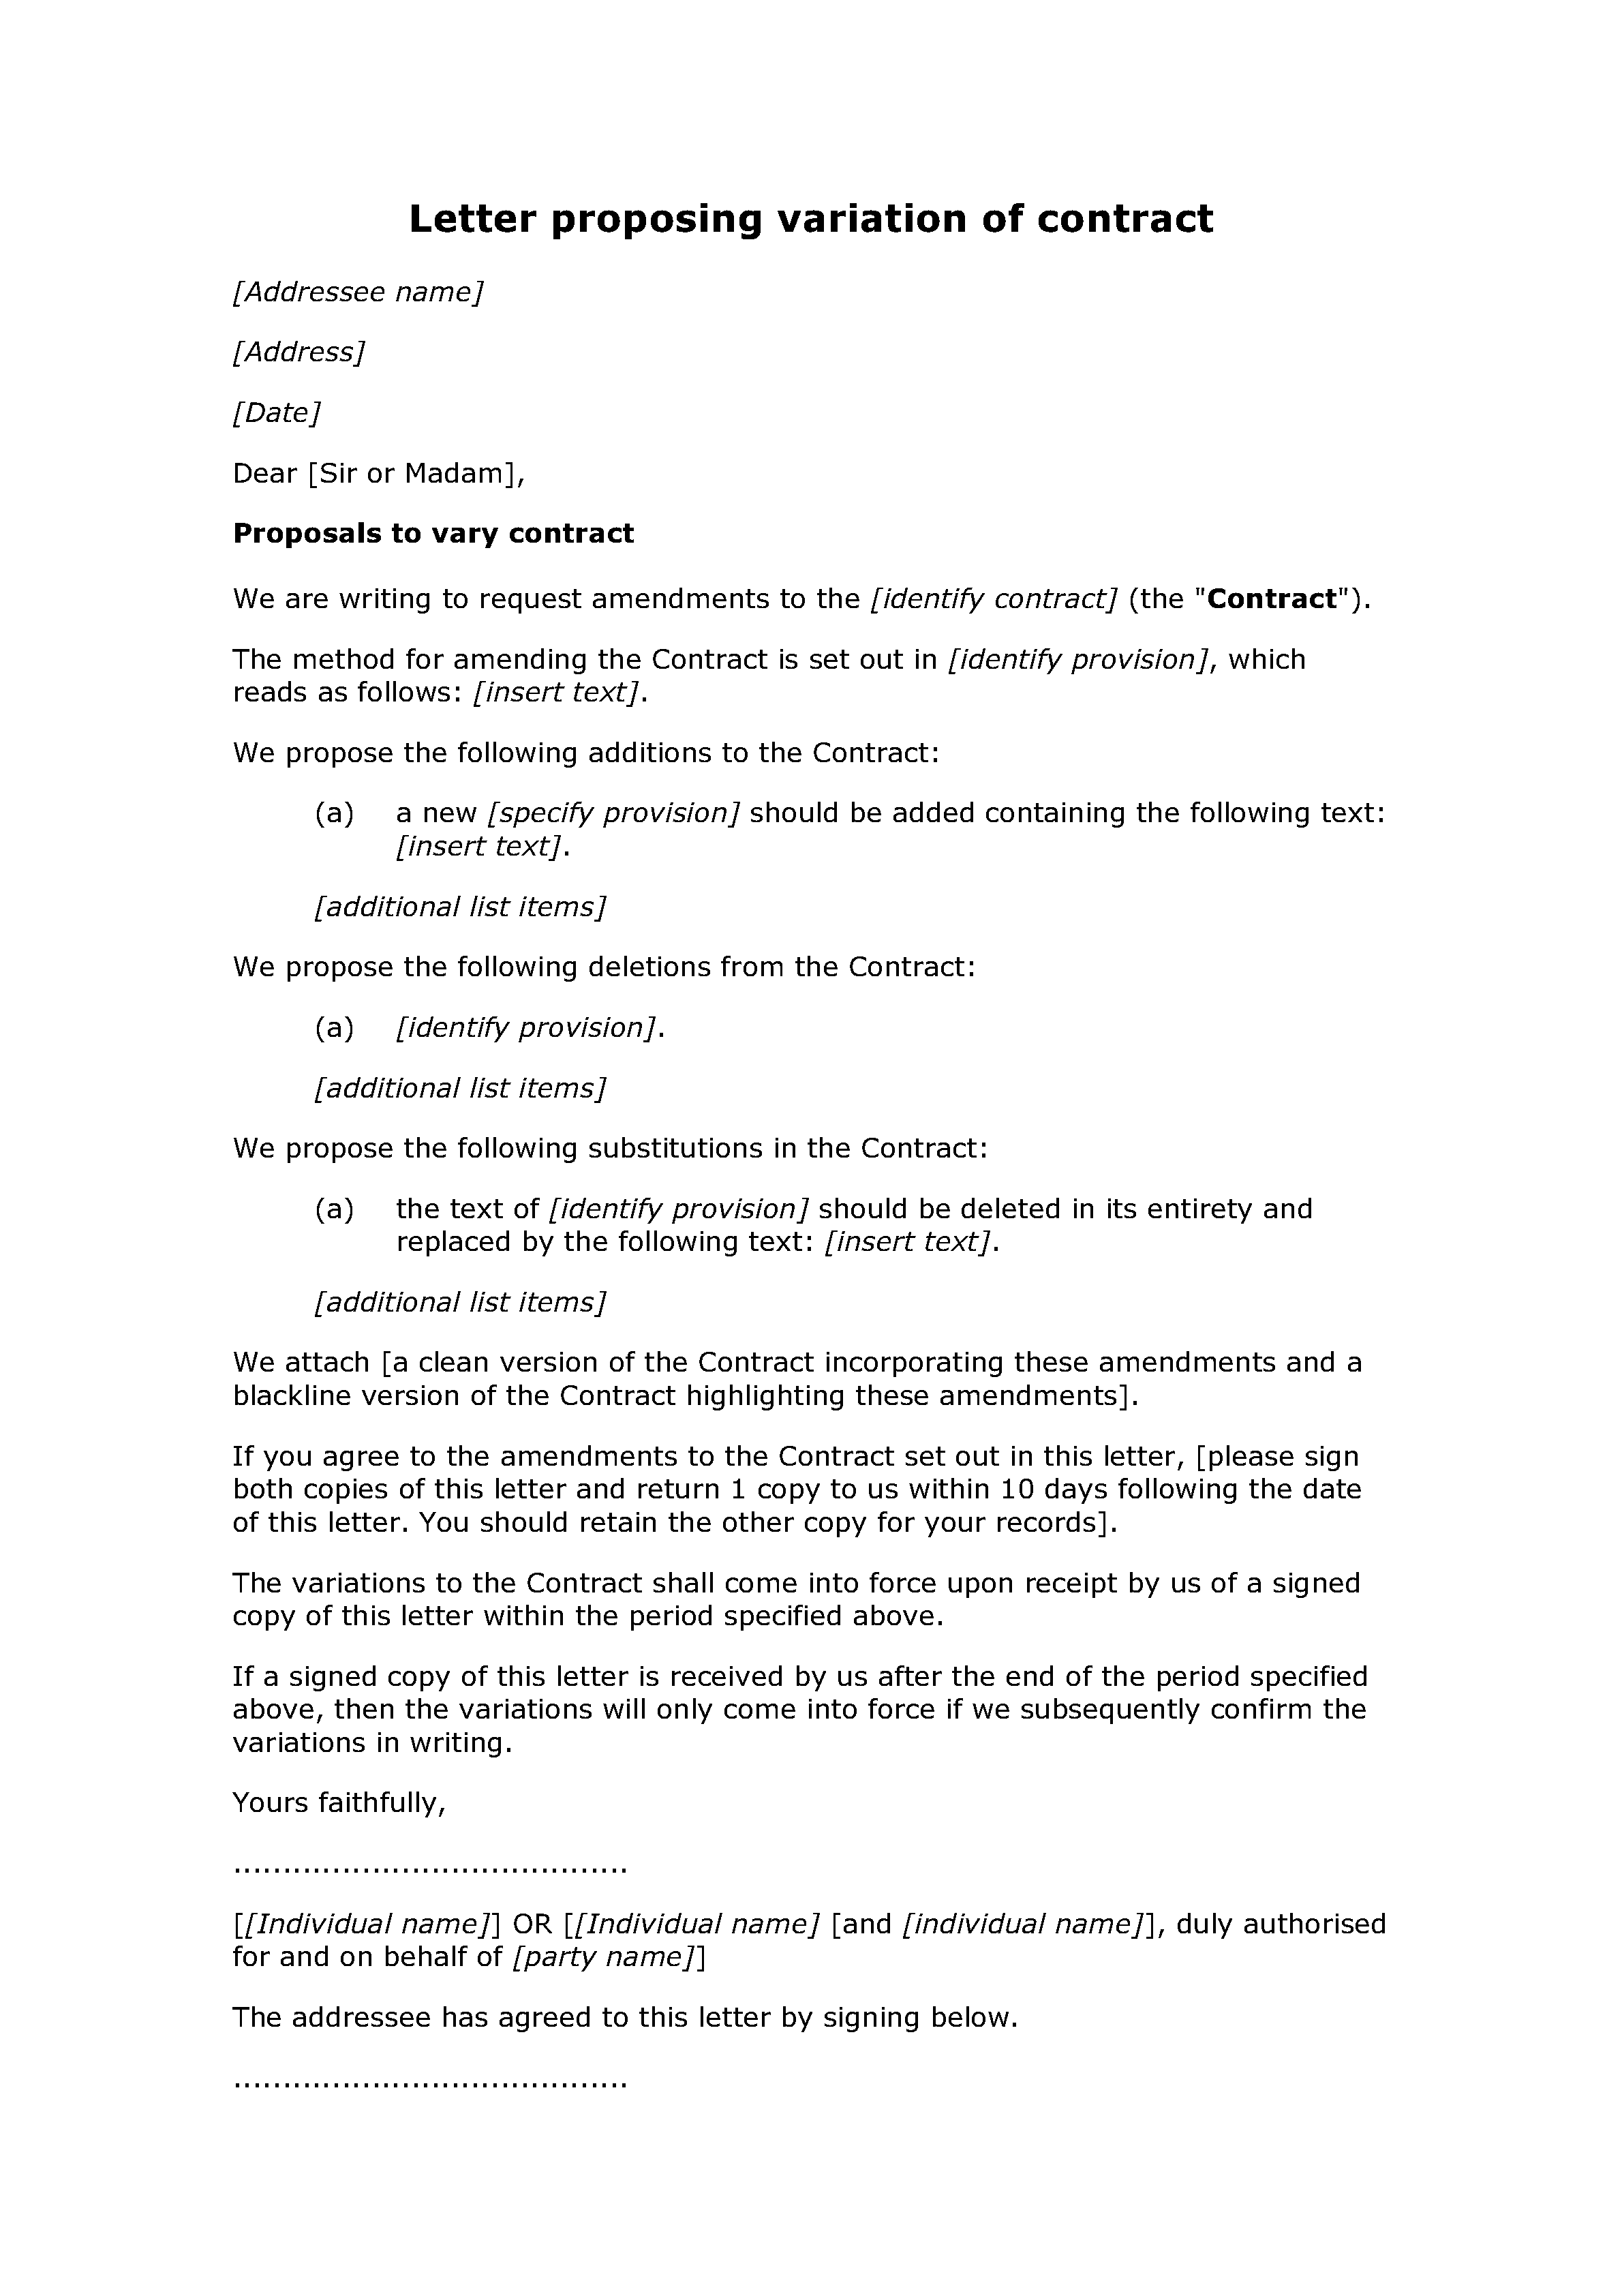 Letter proposing variation of contract - Docular